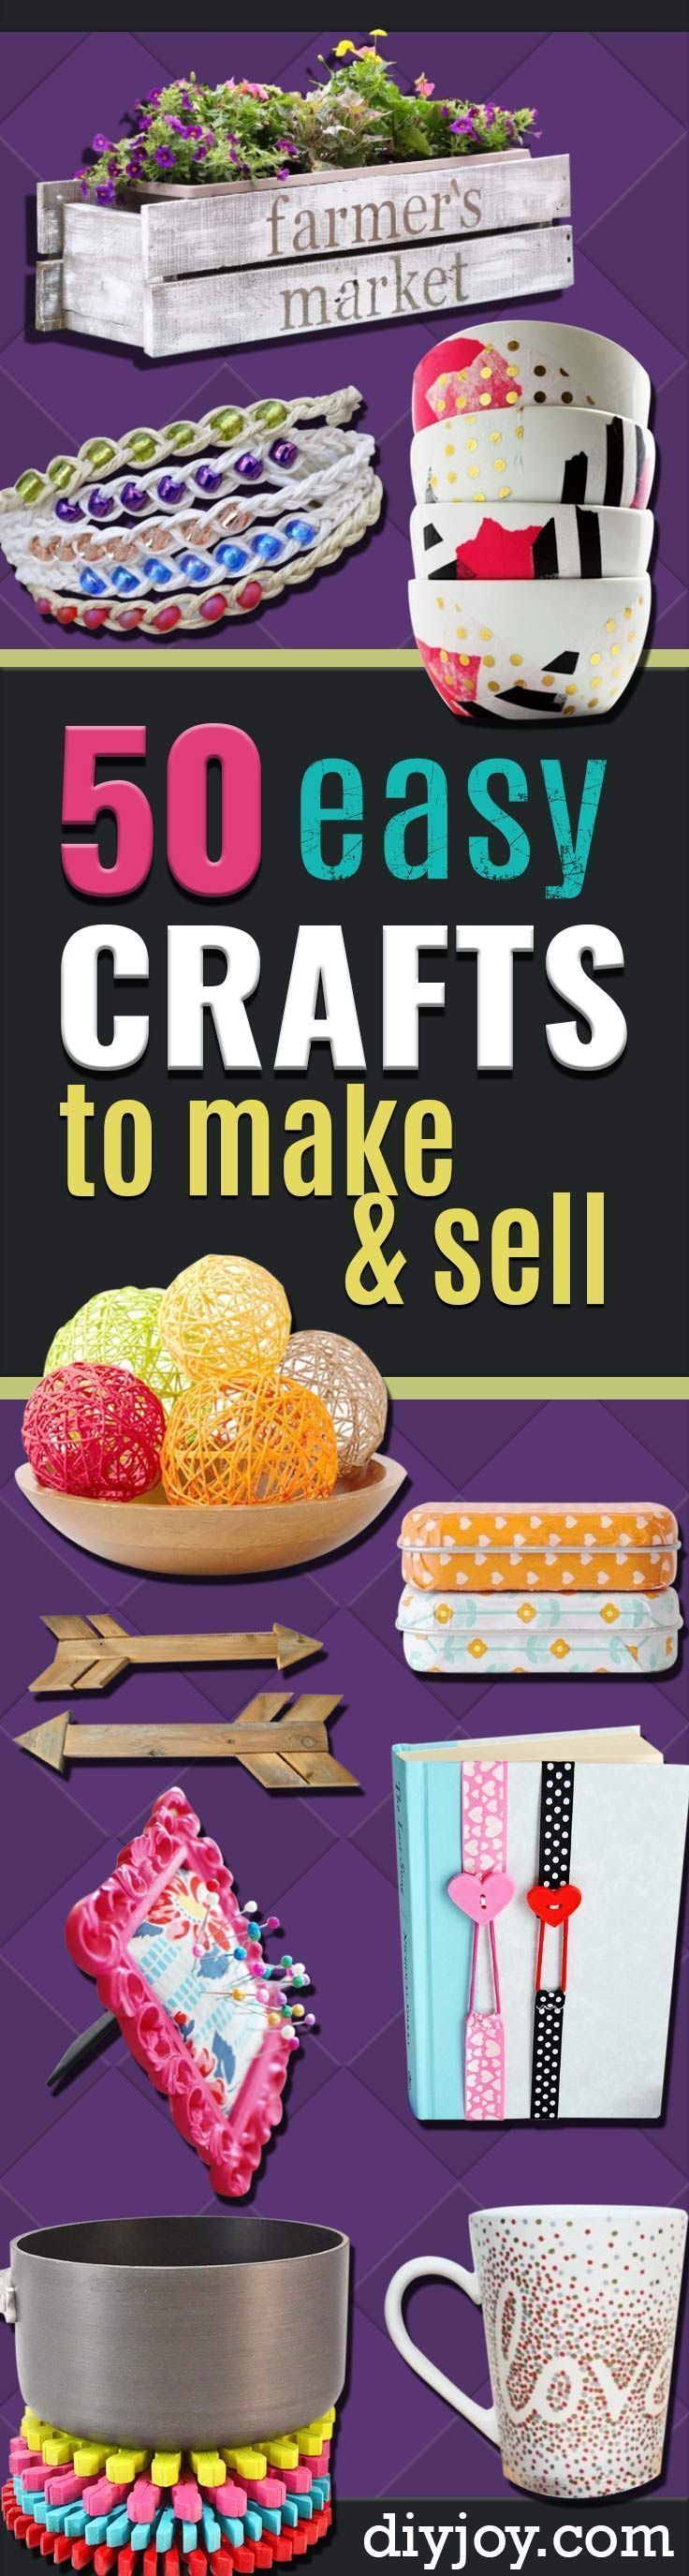 17 best ideas about easy craft projects on pinterest